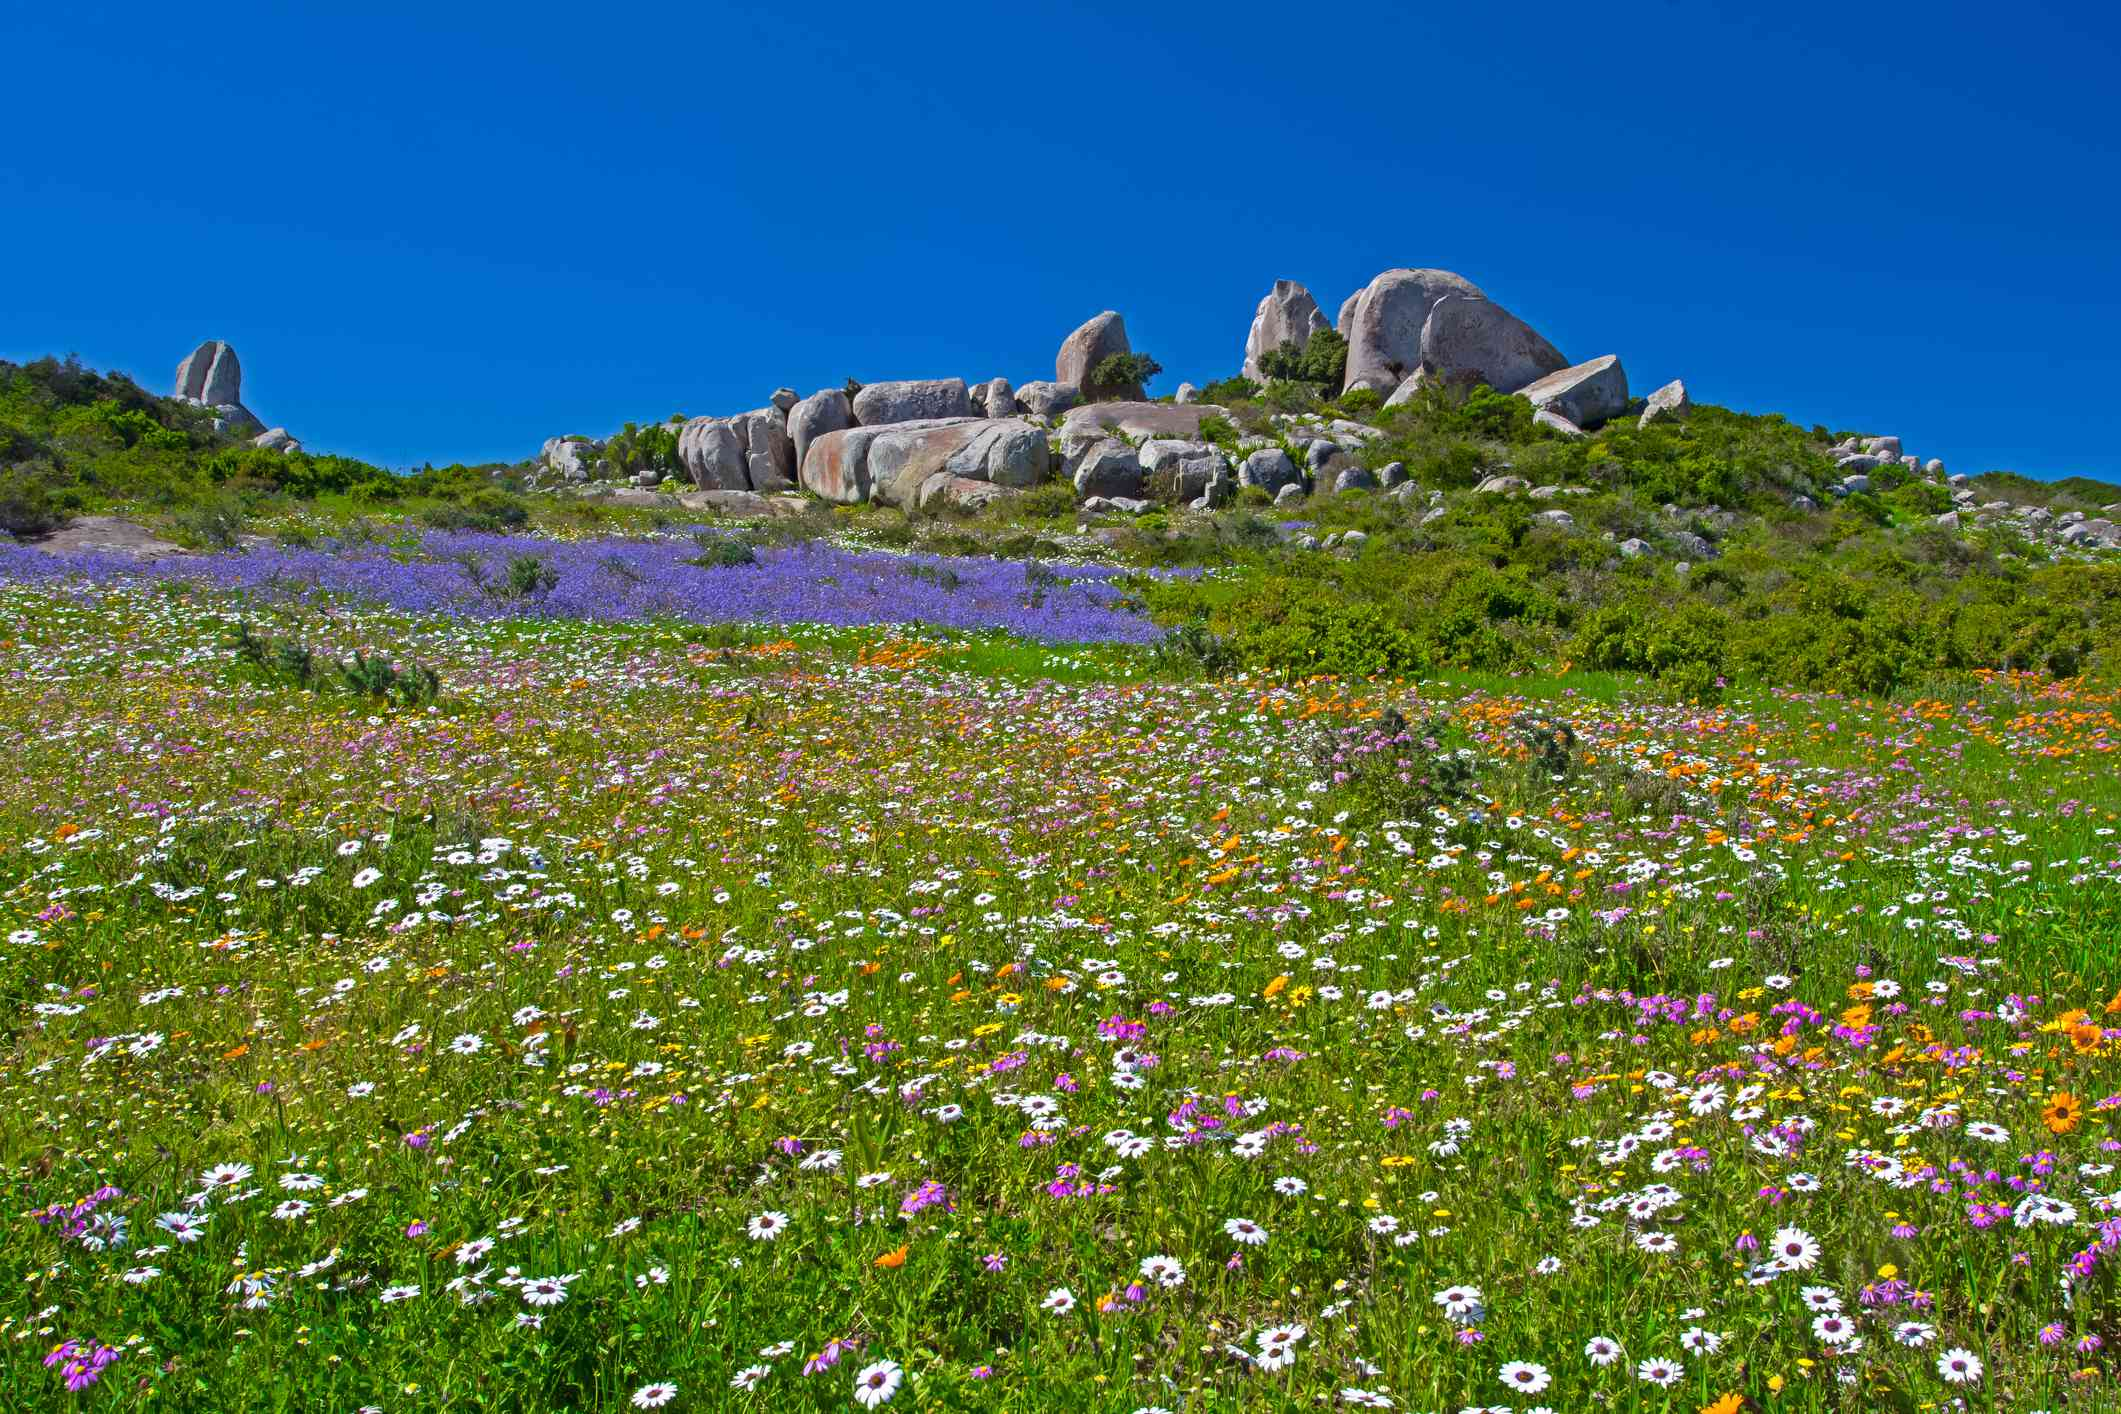 Wildflowers in West Coast National Park, South Africa